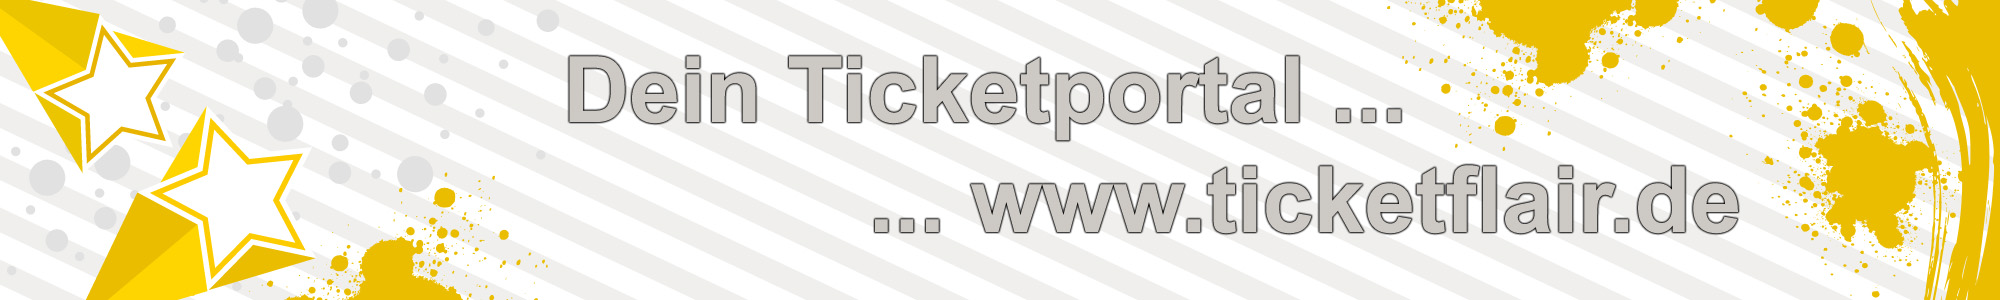 Dein Ticketportal www.ticketflair.de